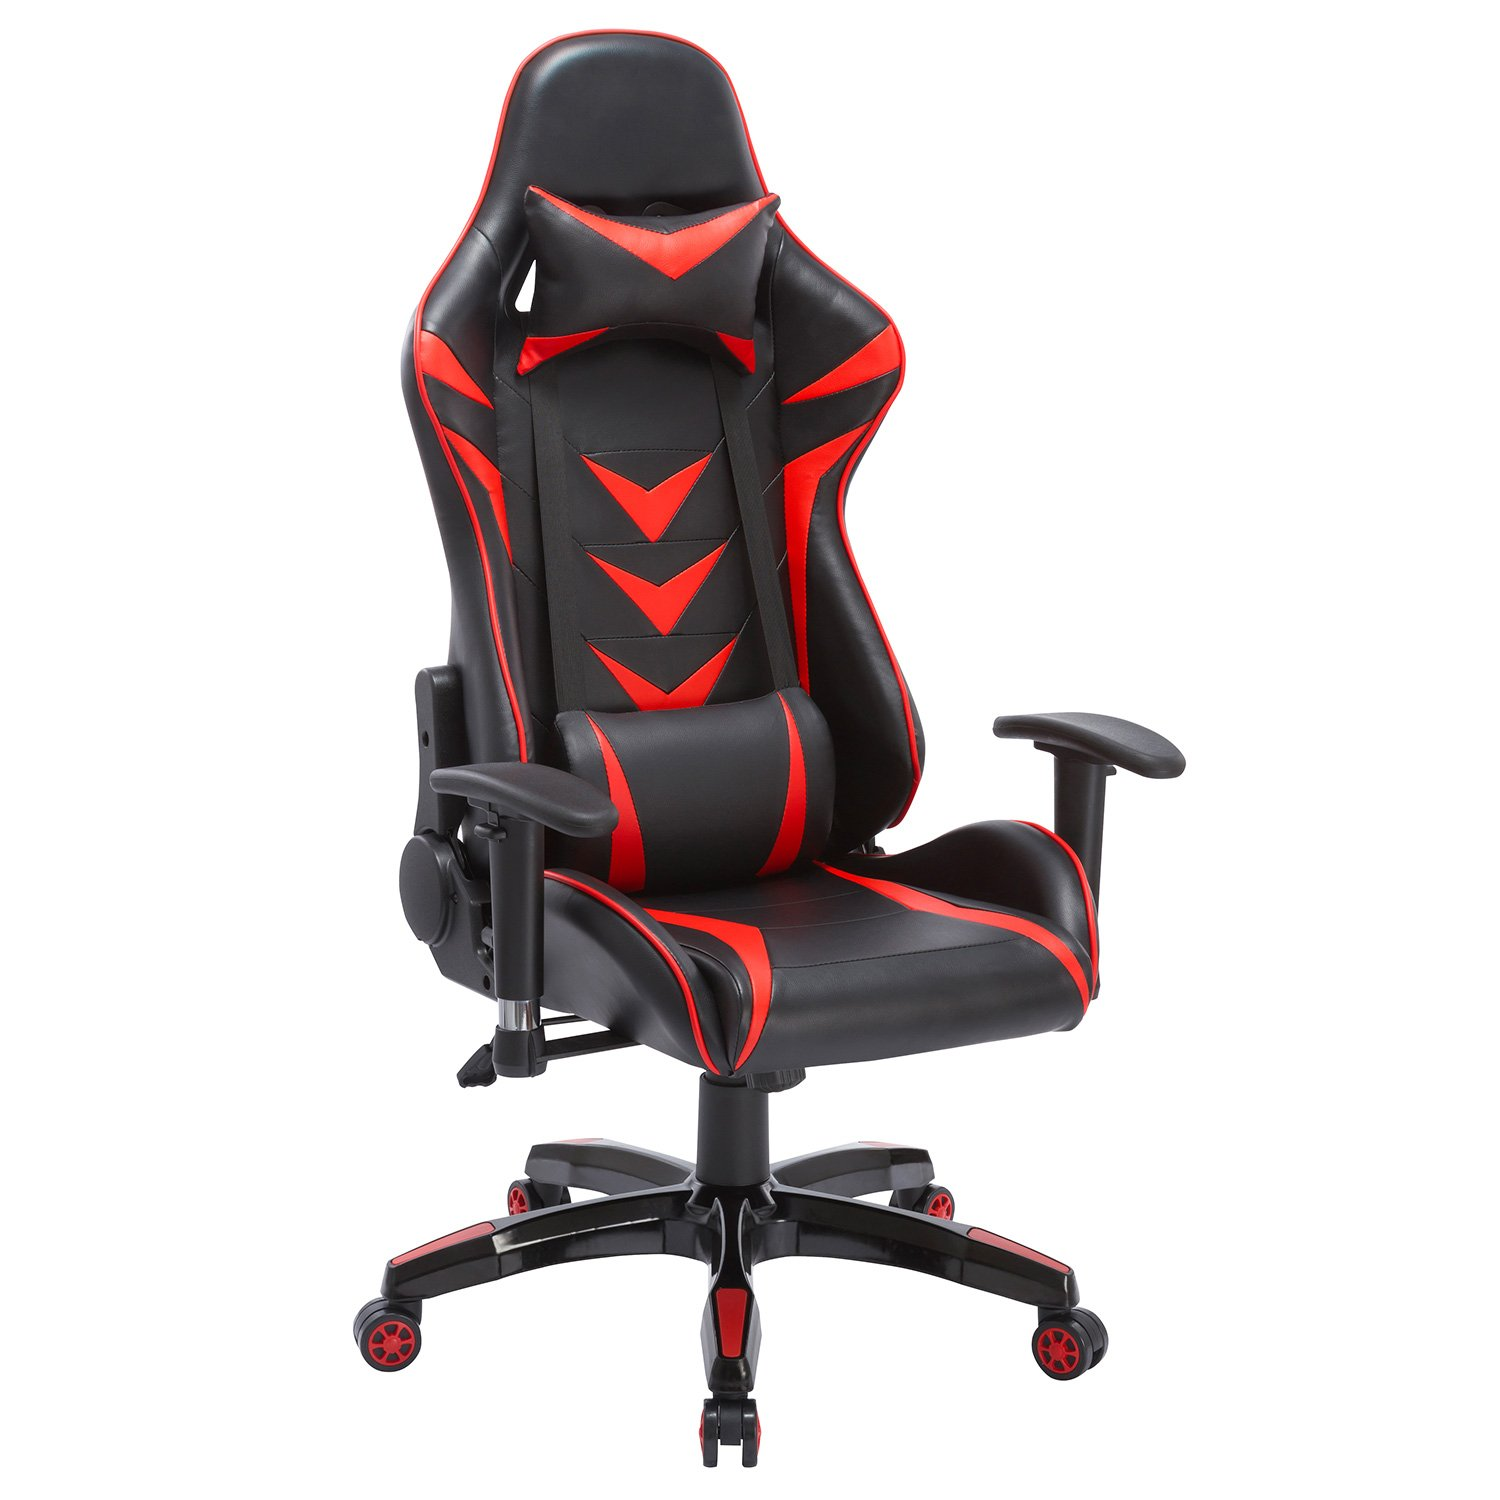 Modern-Depo High-Back Swivel Gaming Chair with Lumbar Support Headrest Racing Style Ergonomic Office Desk Chair – Black Red